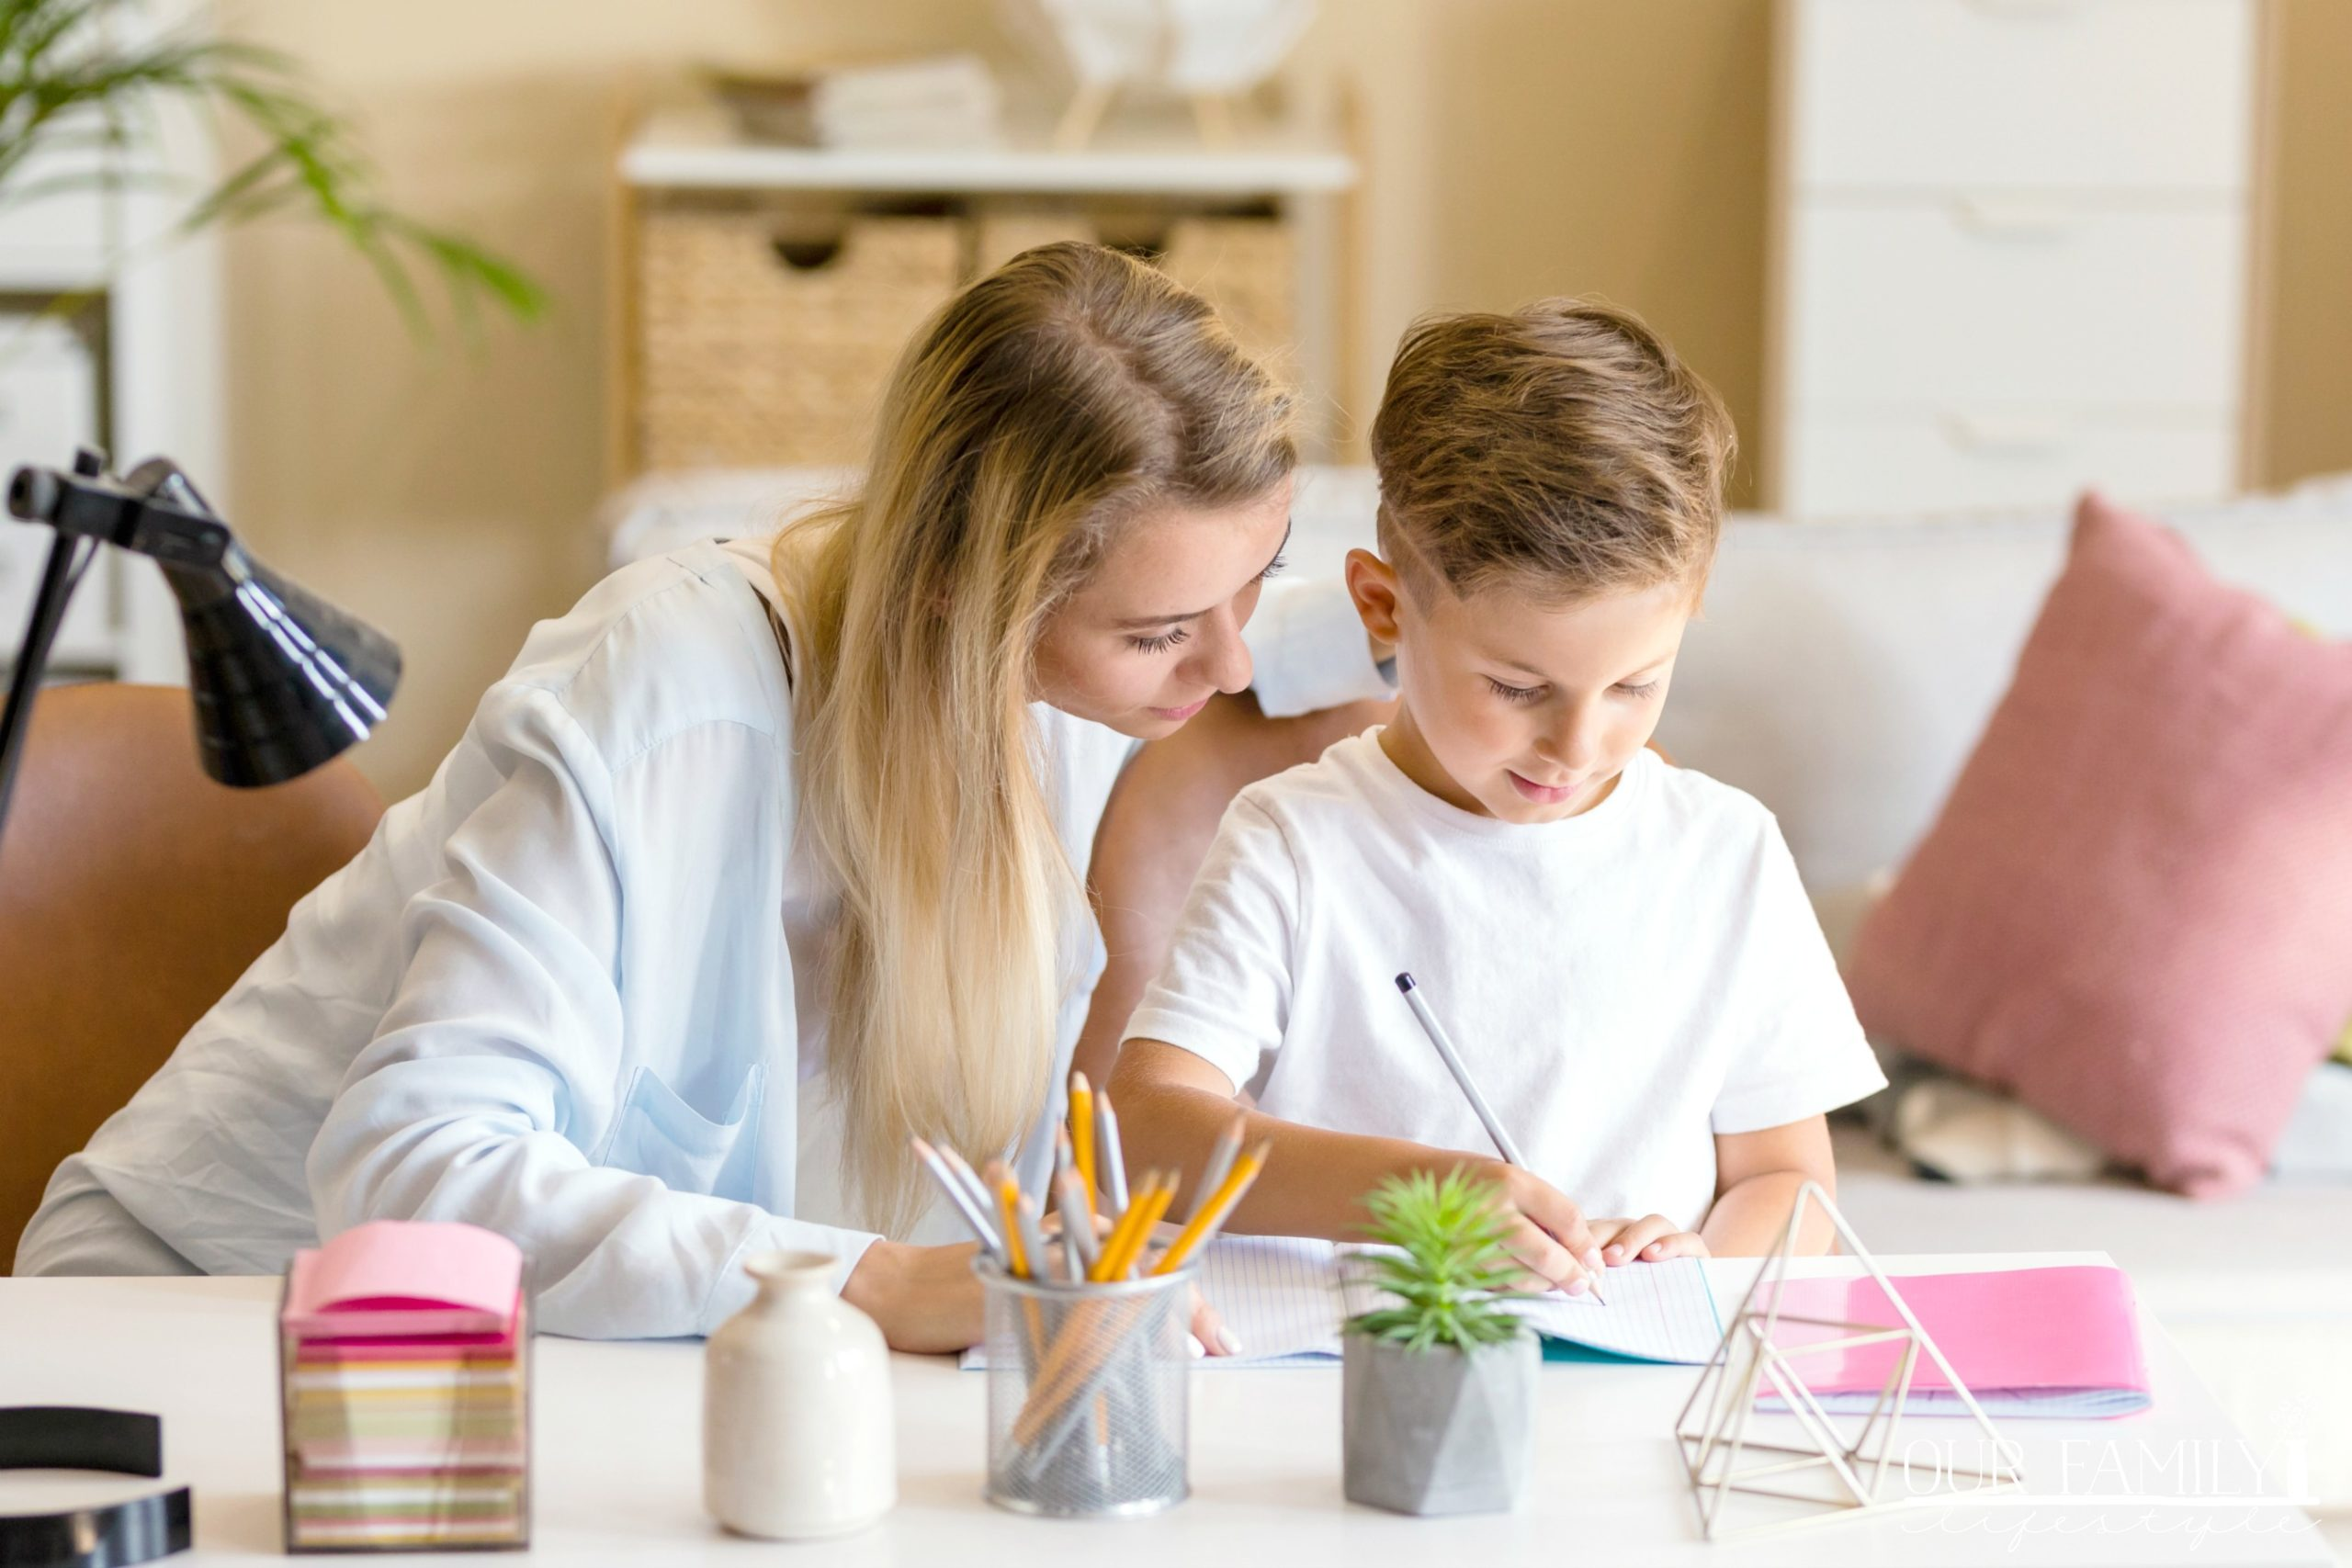 Yes, You CAN Homeschool Your Child. Take a Breath. Follow These Tips.